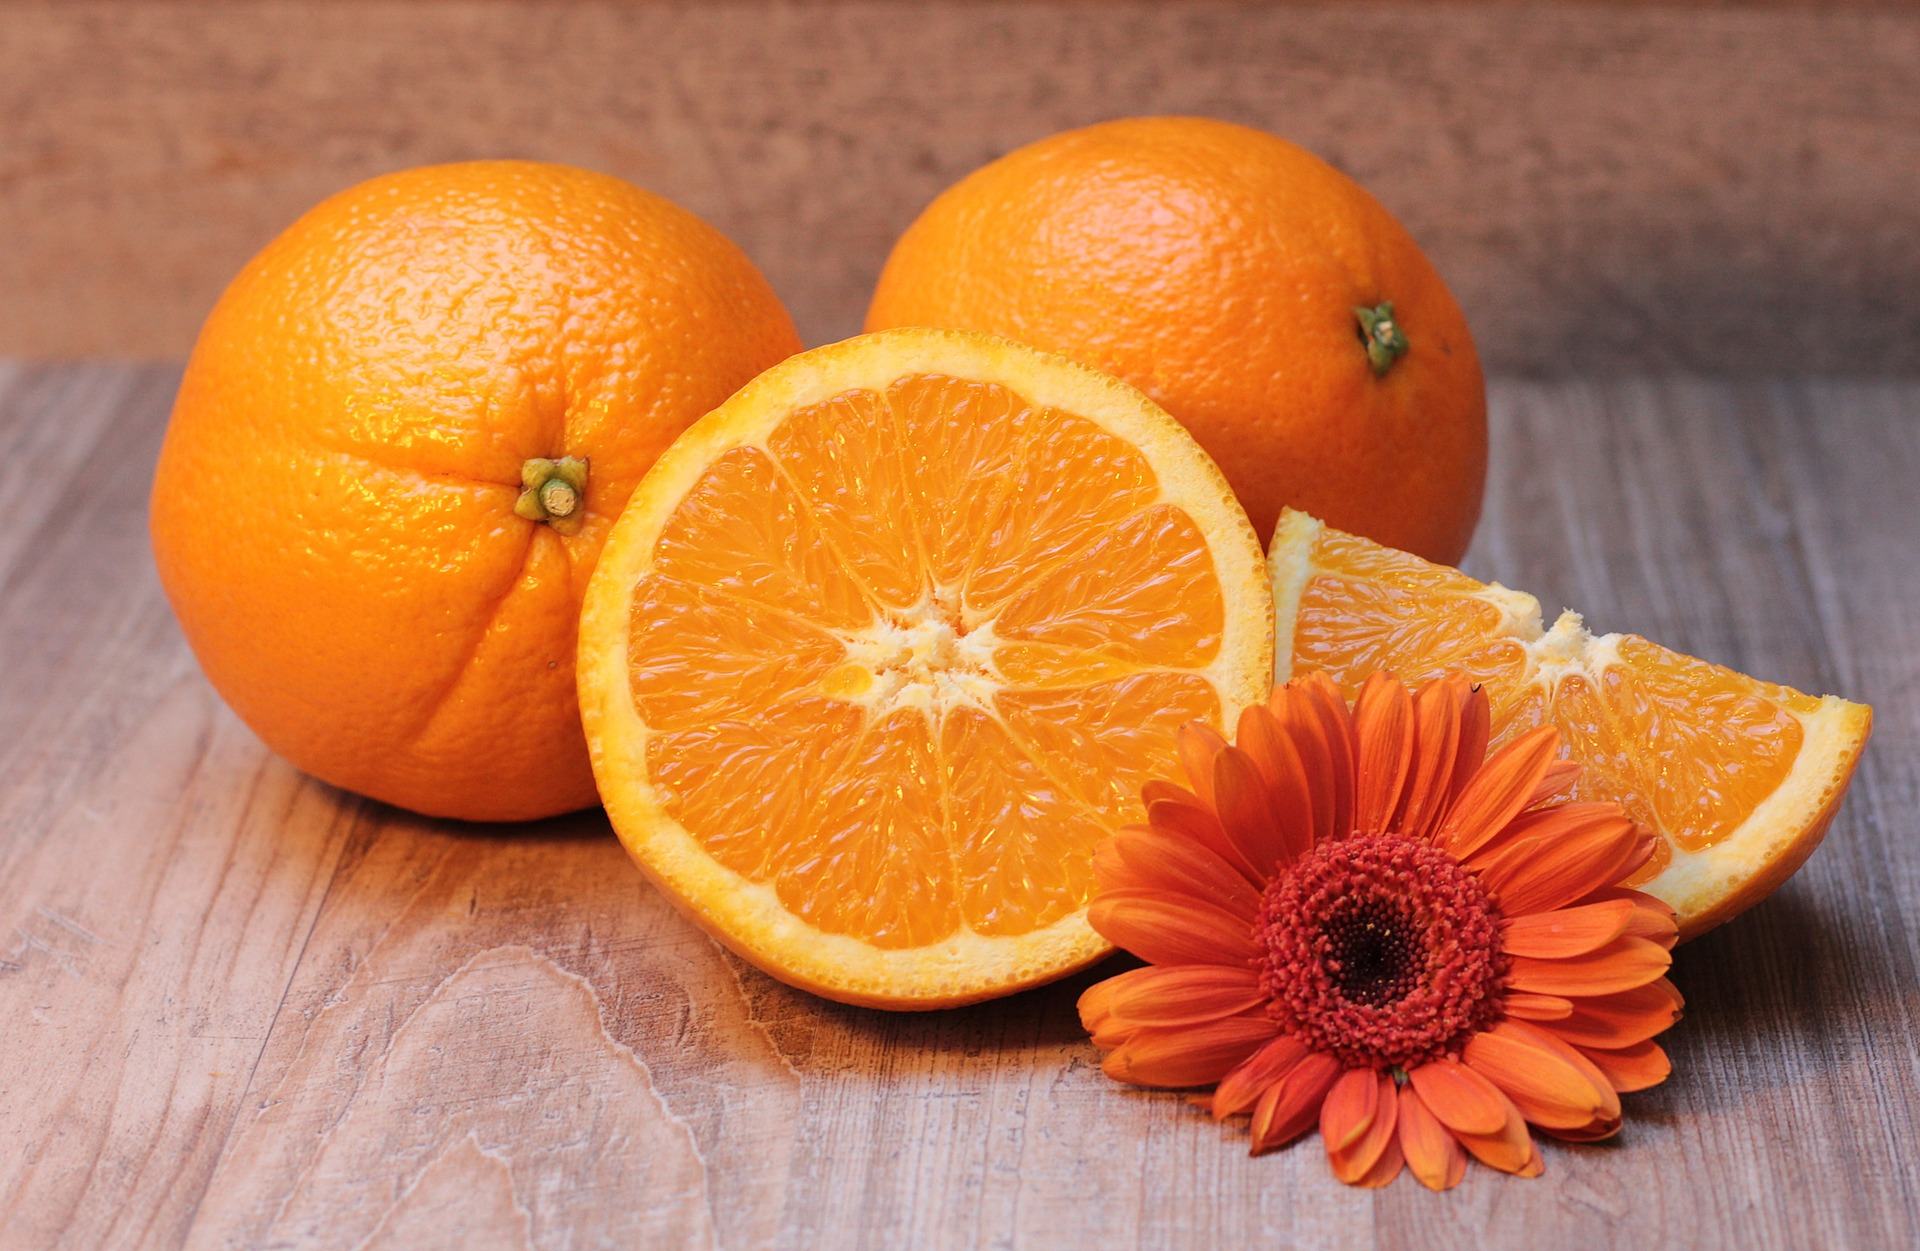 oranges high in vitamin c